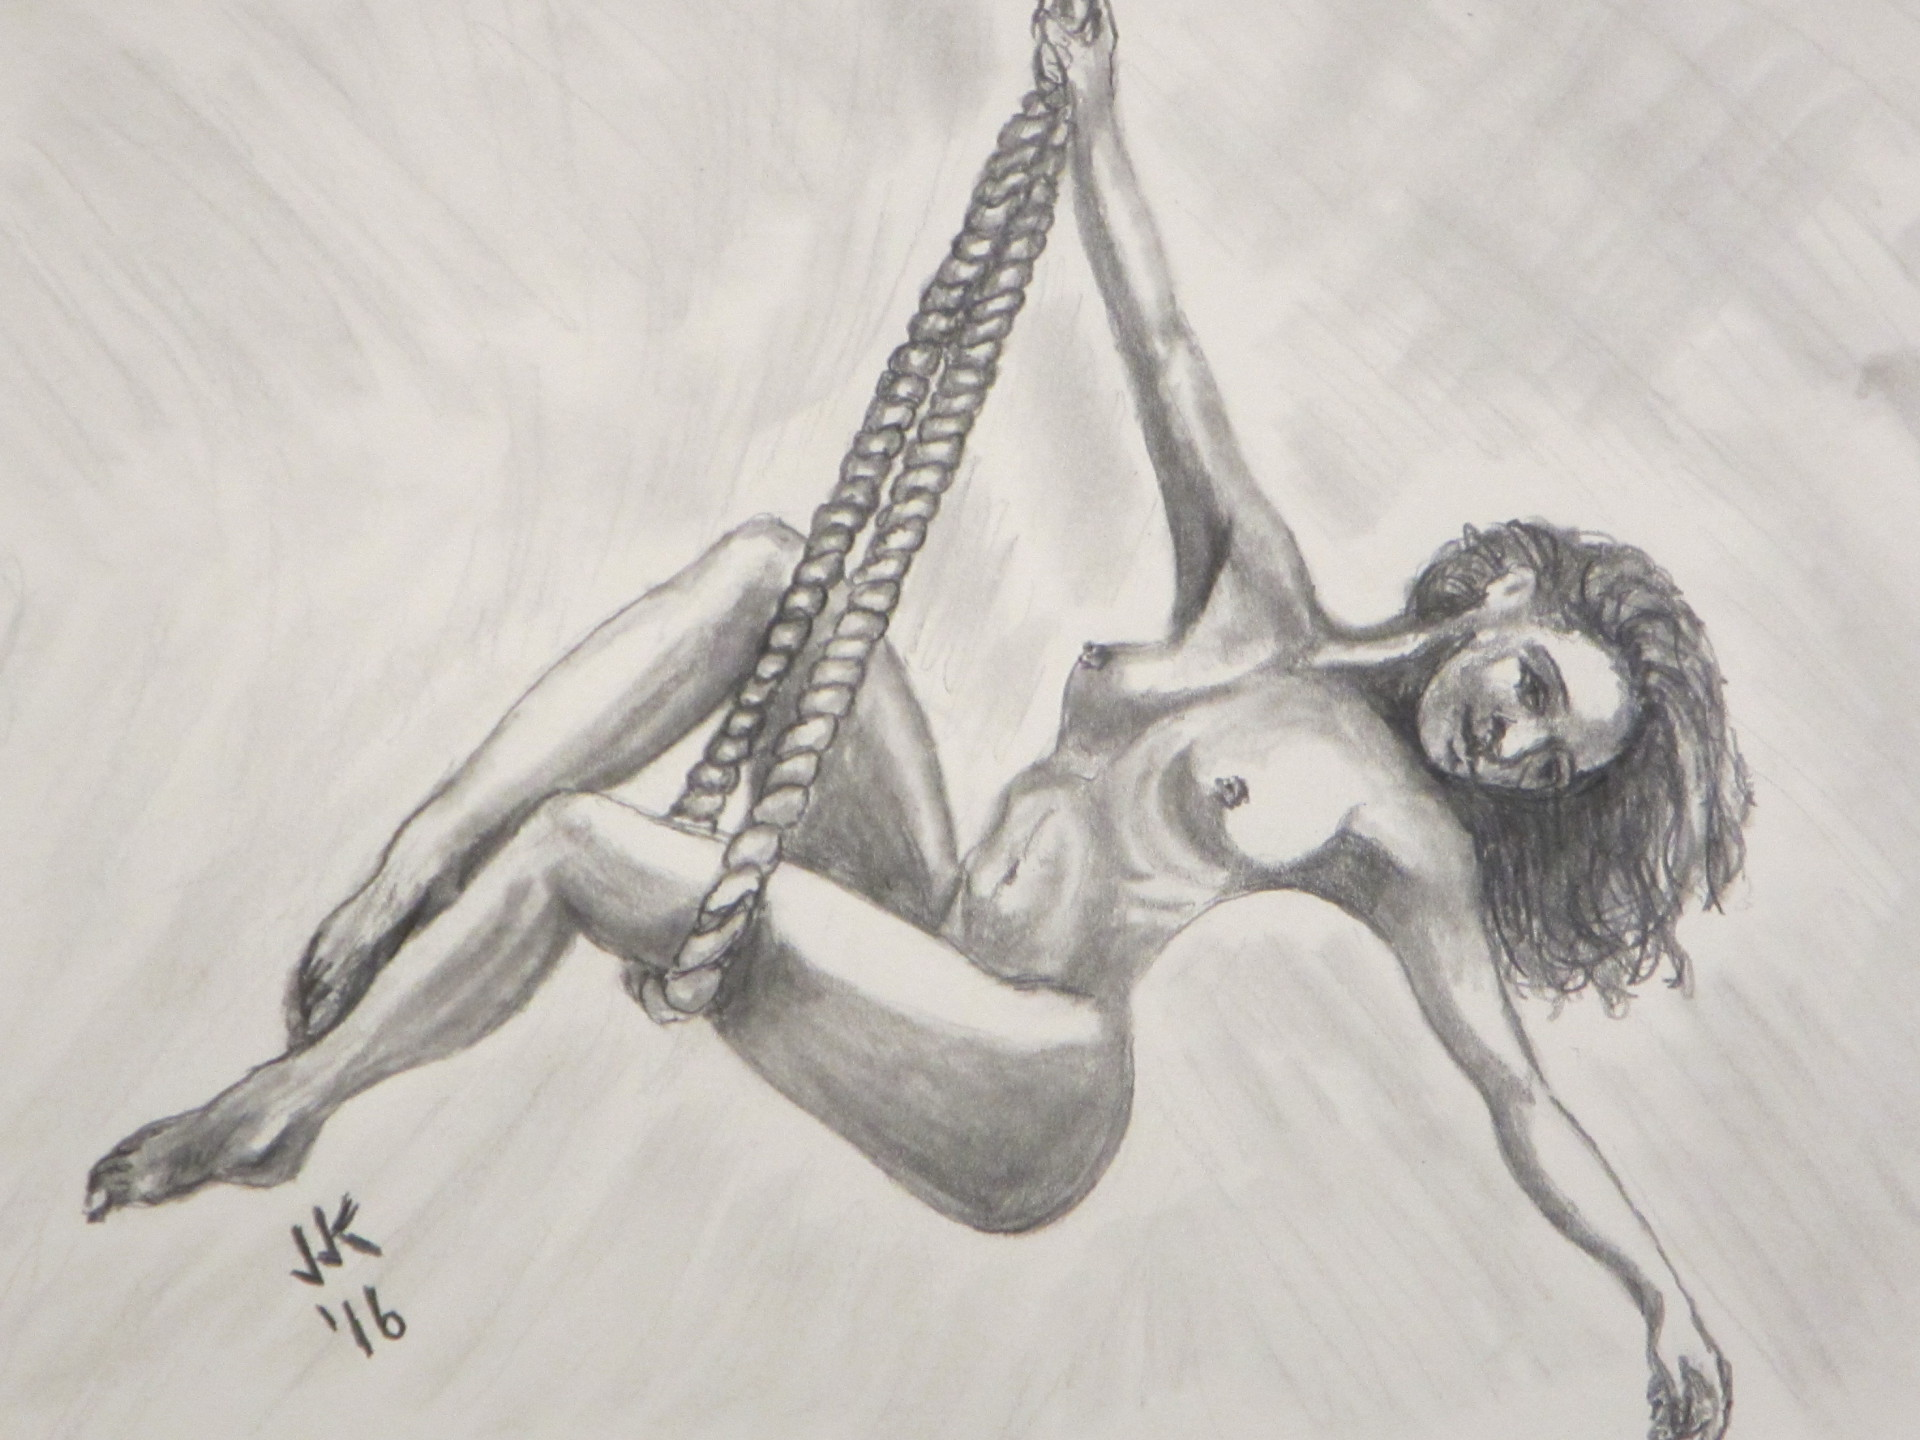 A nude woman swinging from a rope.